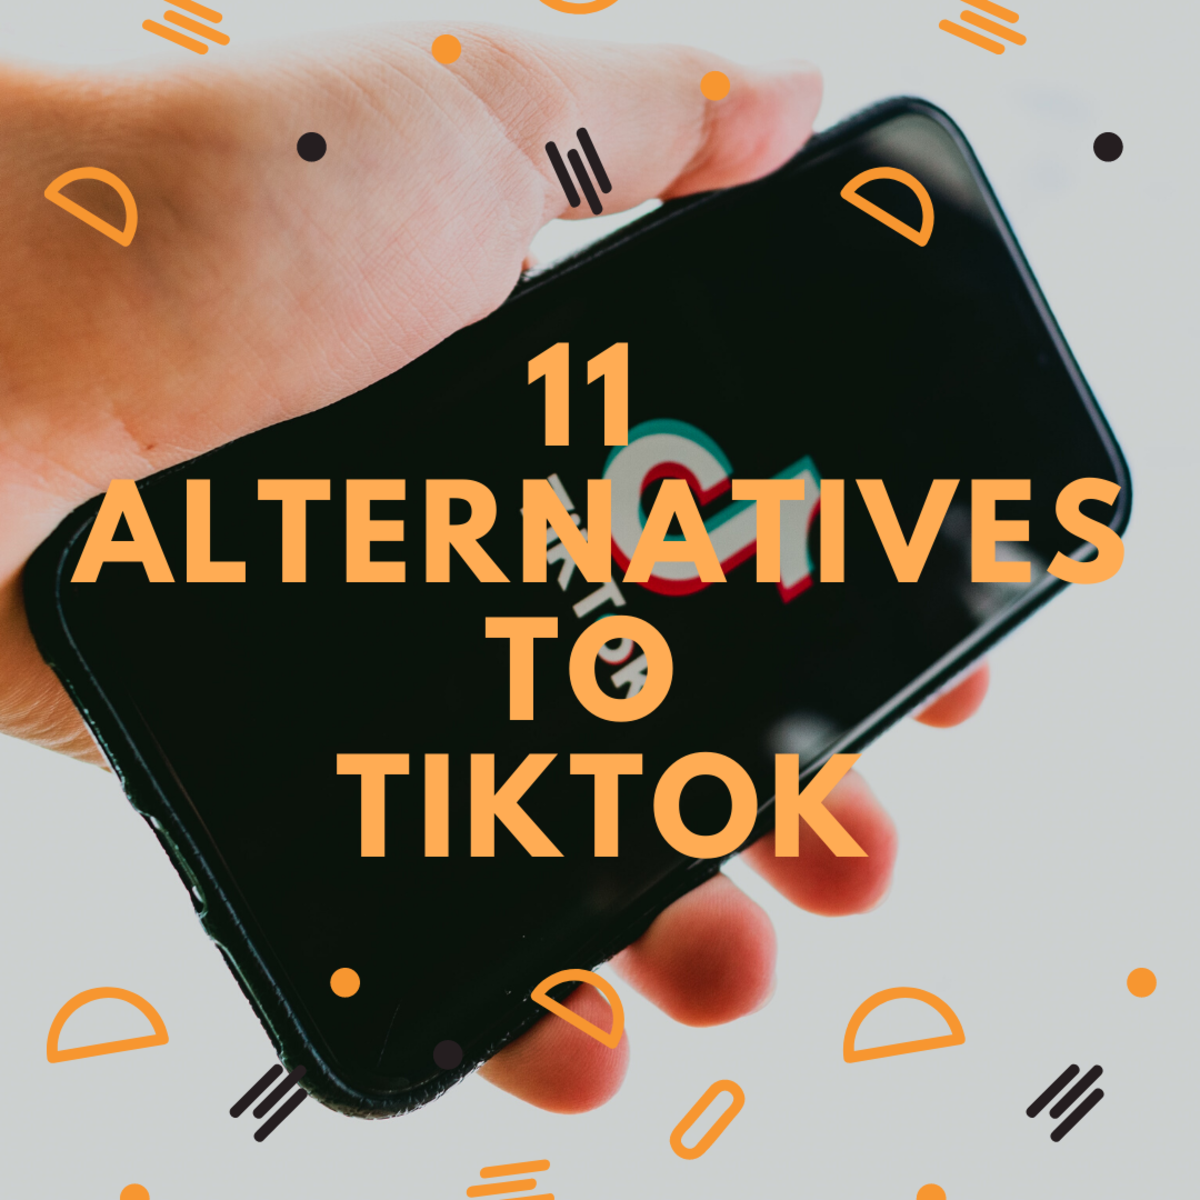 There are many apps on the market that are giving TikTok a run for their money.